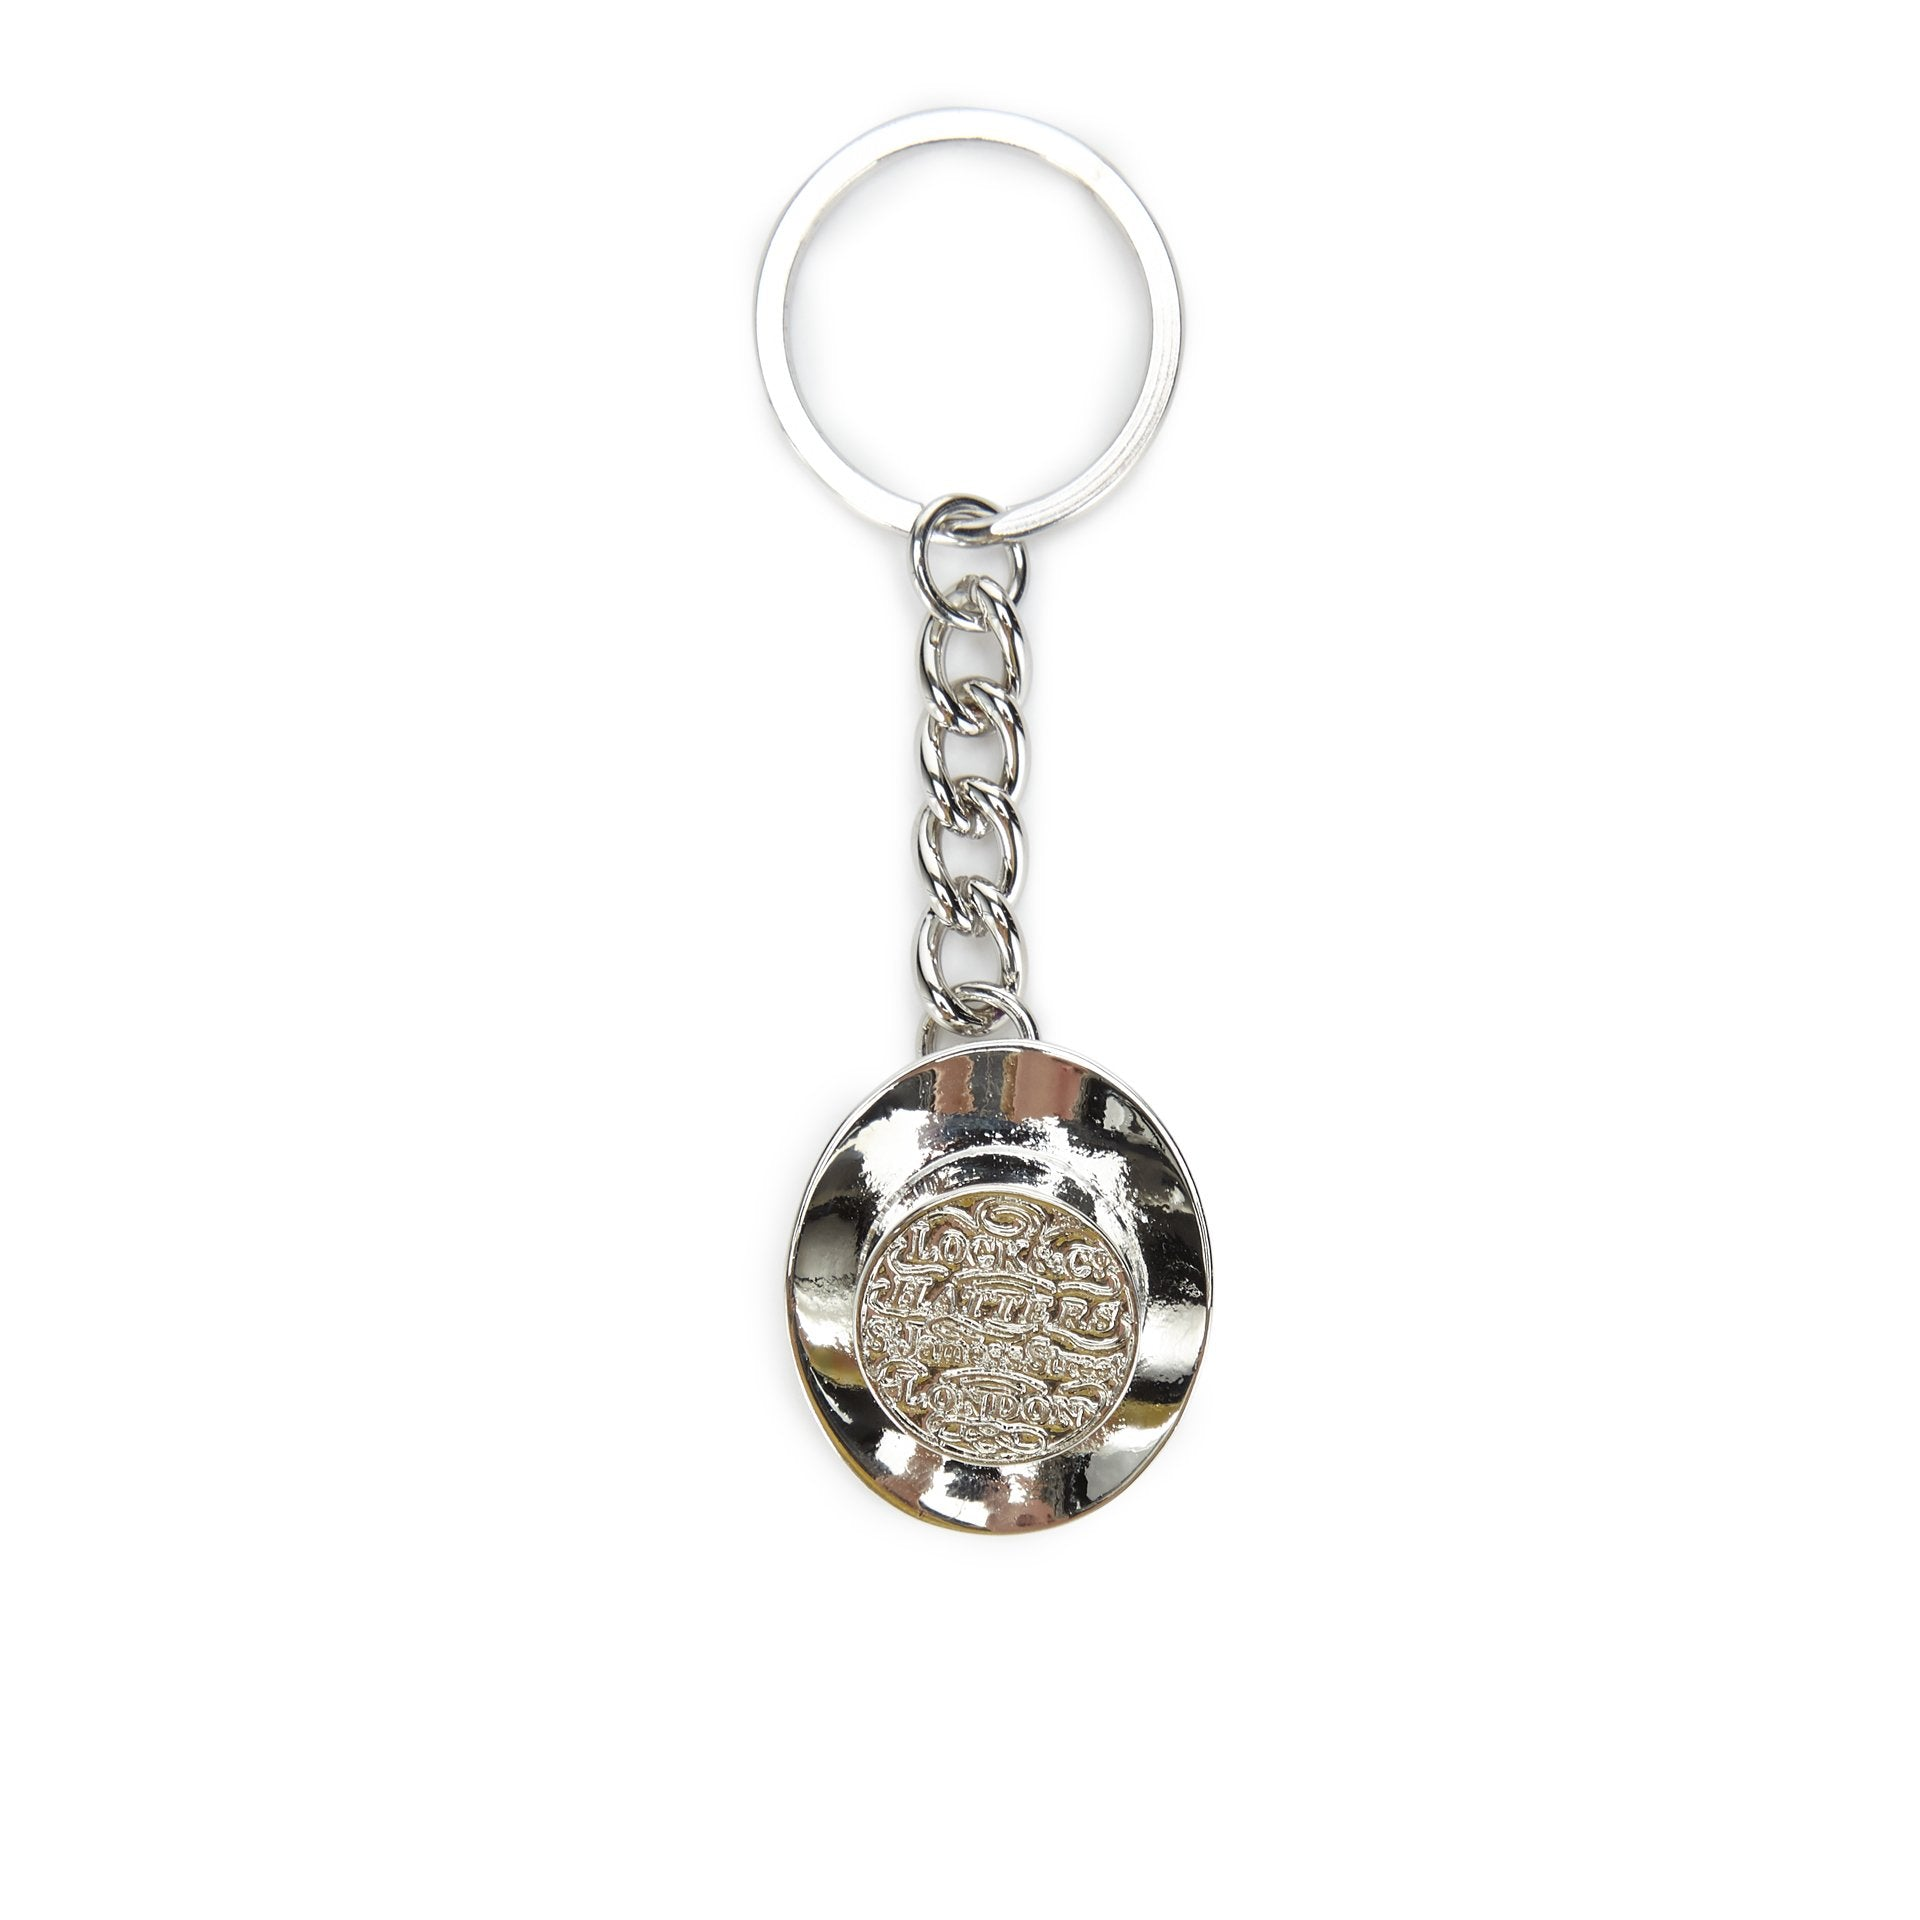 Lock keyring - Hat Accessories - Lock & Co. Hatters London UK